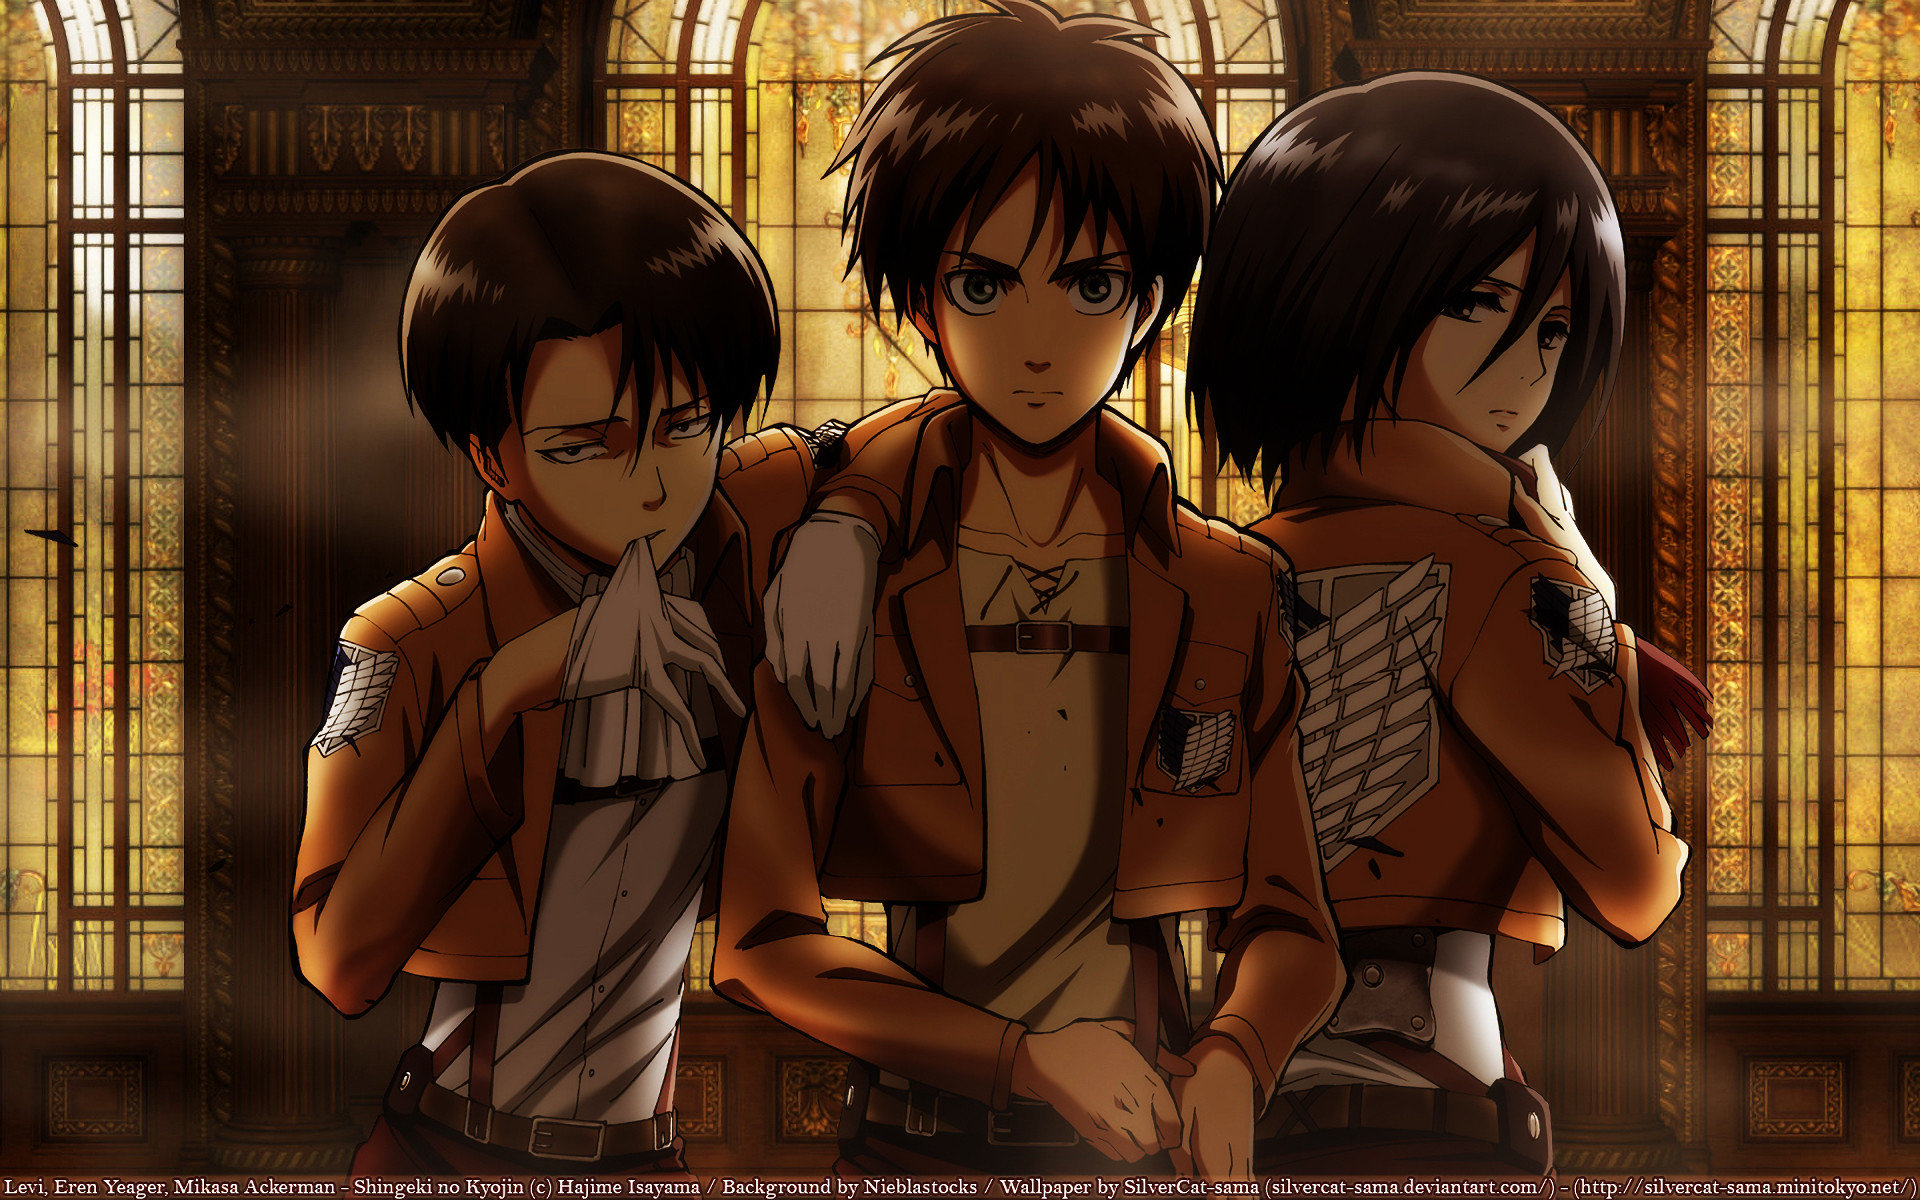 Levi Attack On Titan Wallpapers On Wallpaperdog You can also upload and share your favorite levi ackerman wallpapers. levi attack on titan wallpapers on